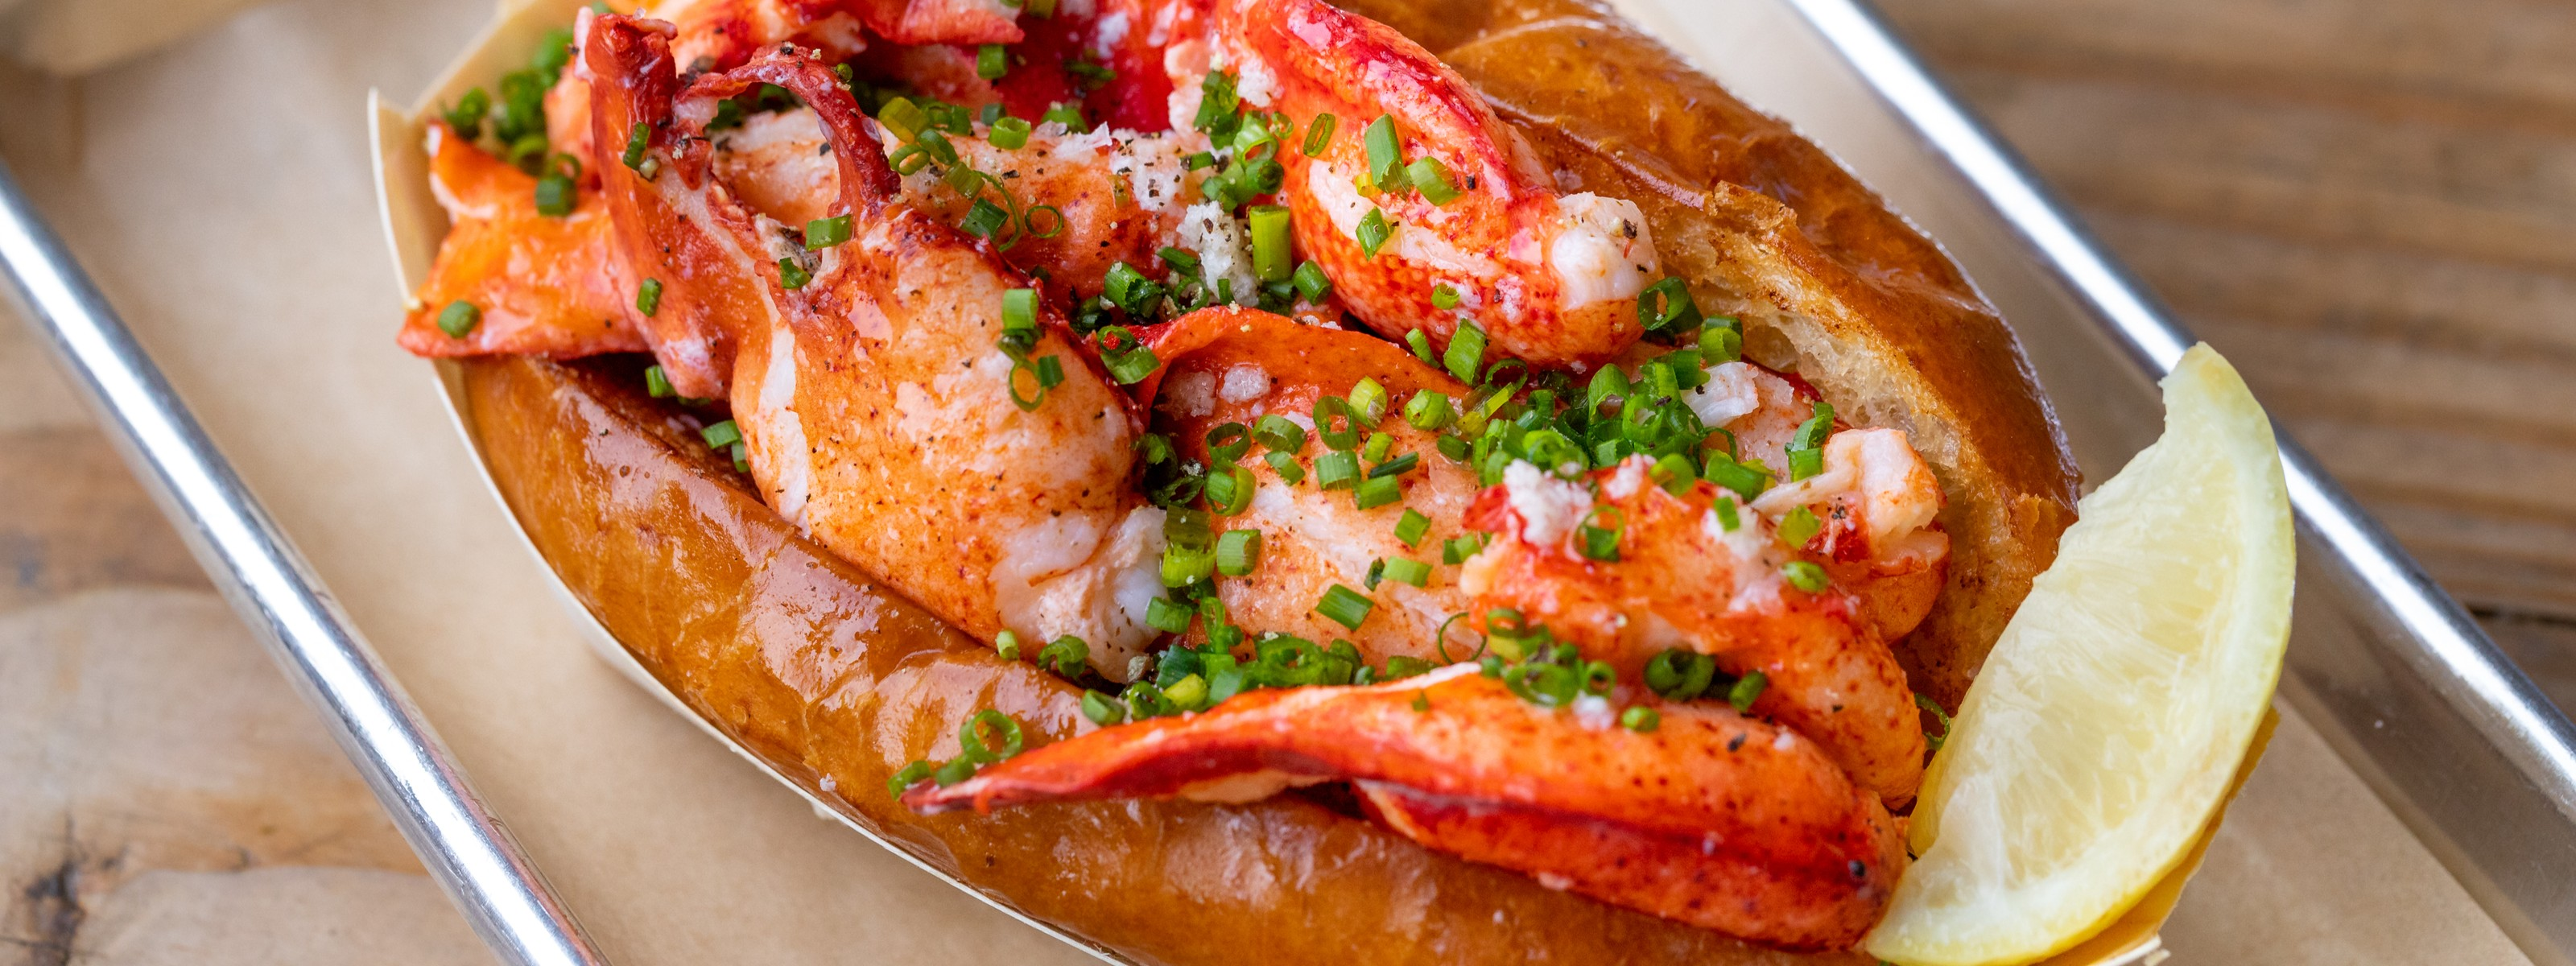 5 Places To Pick Up A Lobster Roll Right Now - Los Angeles - The Infatuation